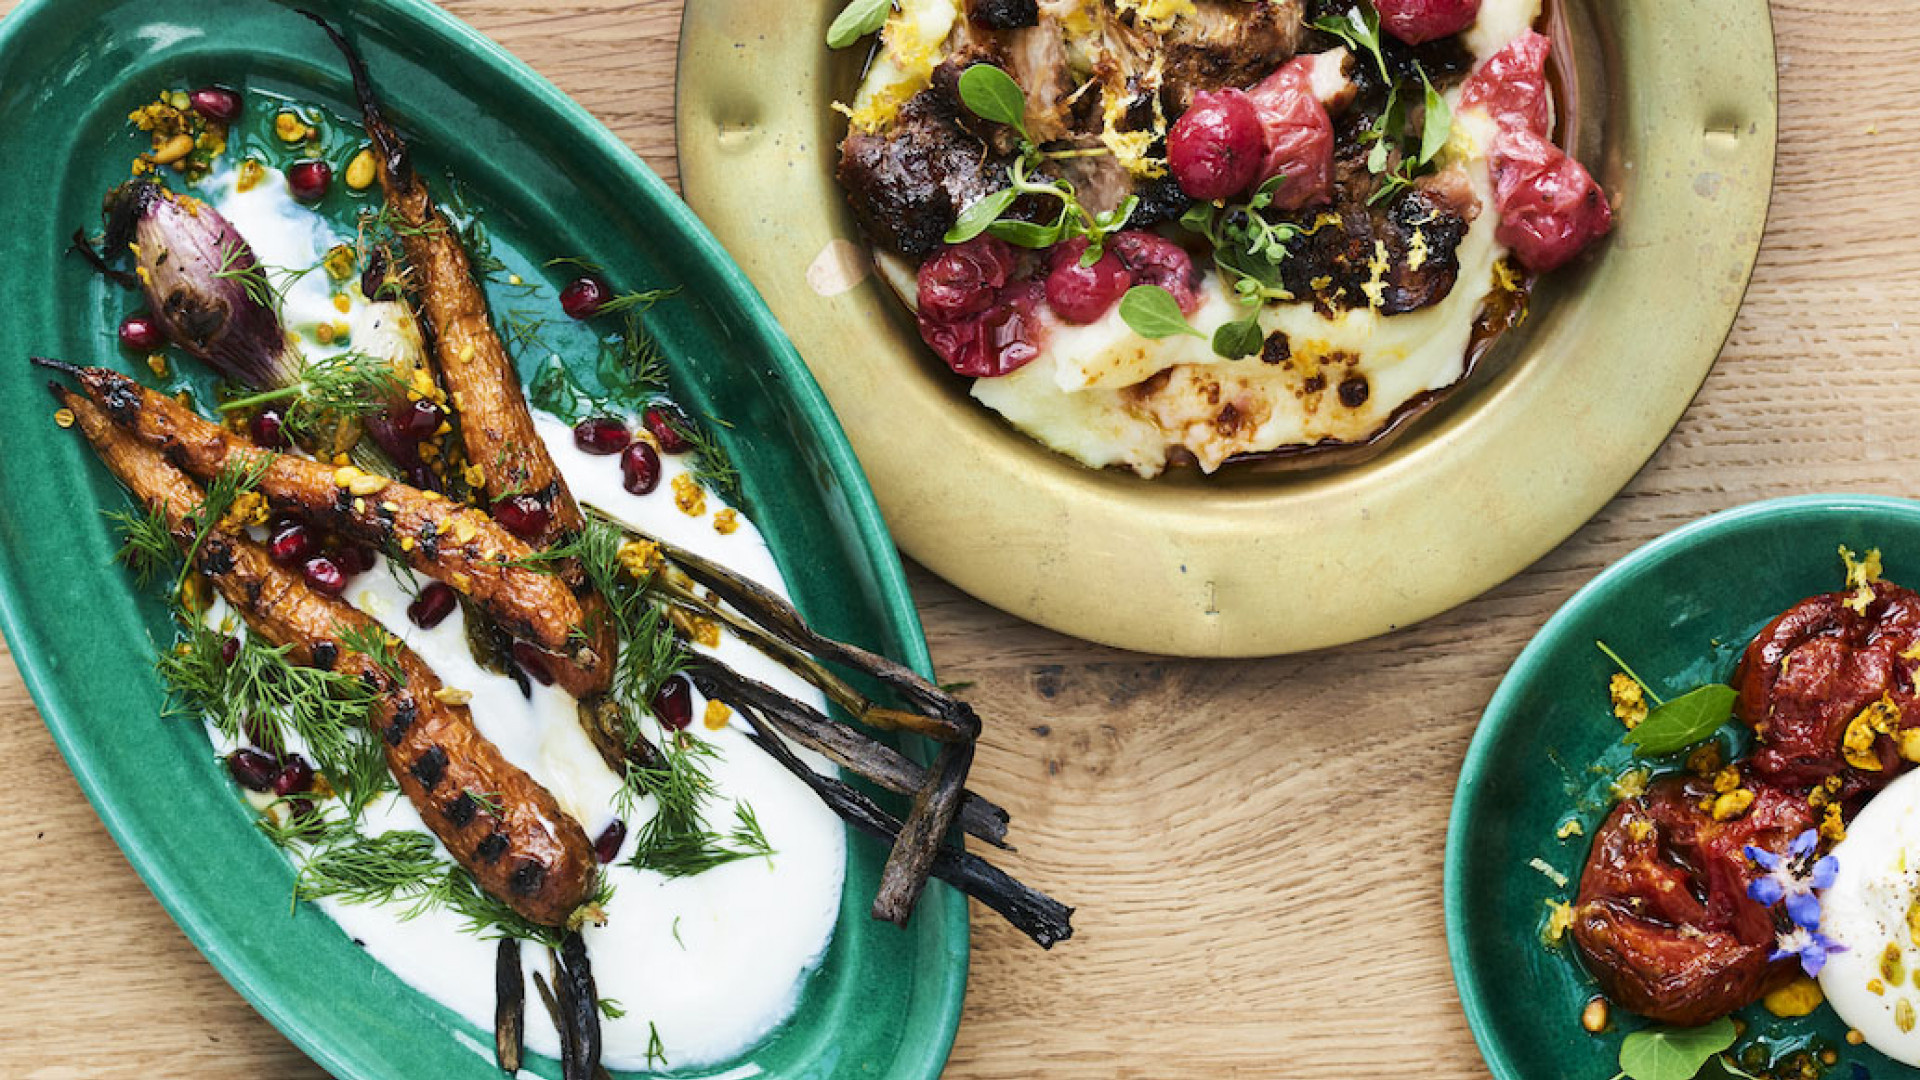 Best restaurants in London: fresh food at Wild by Tart